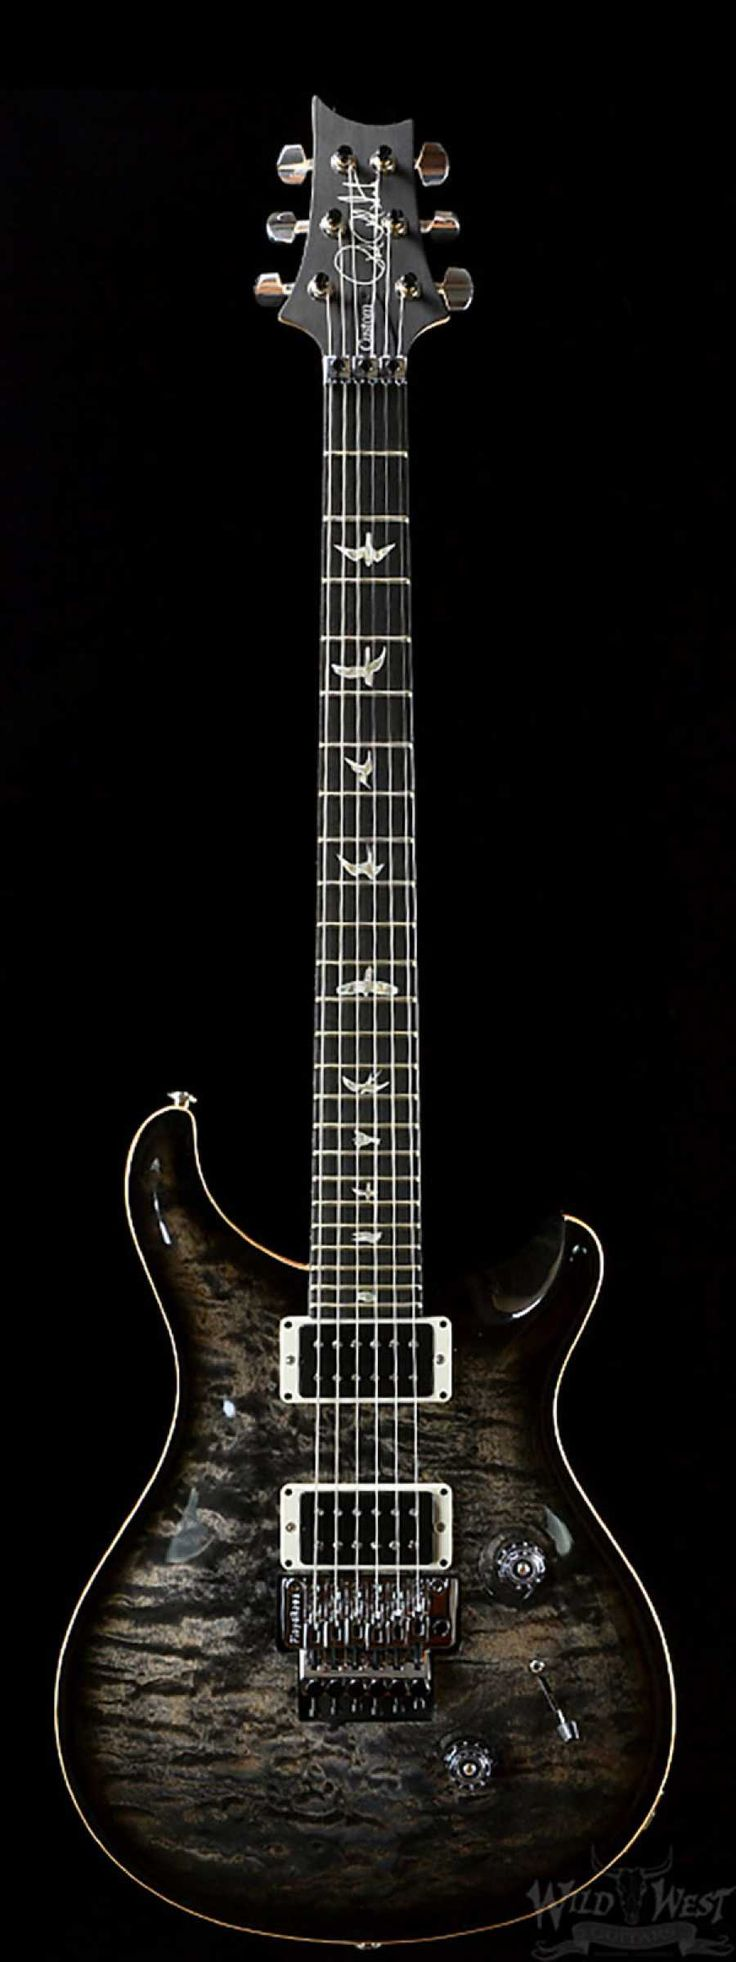 PRS Custom 24 Floyd Charcoal Burst 10 Top - Wild West Guitars